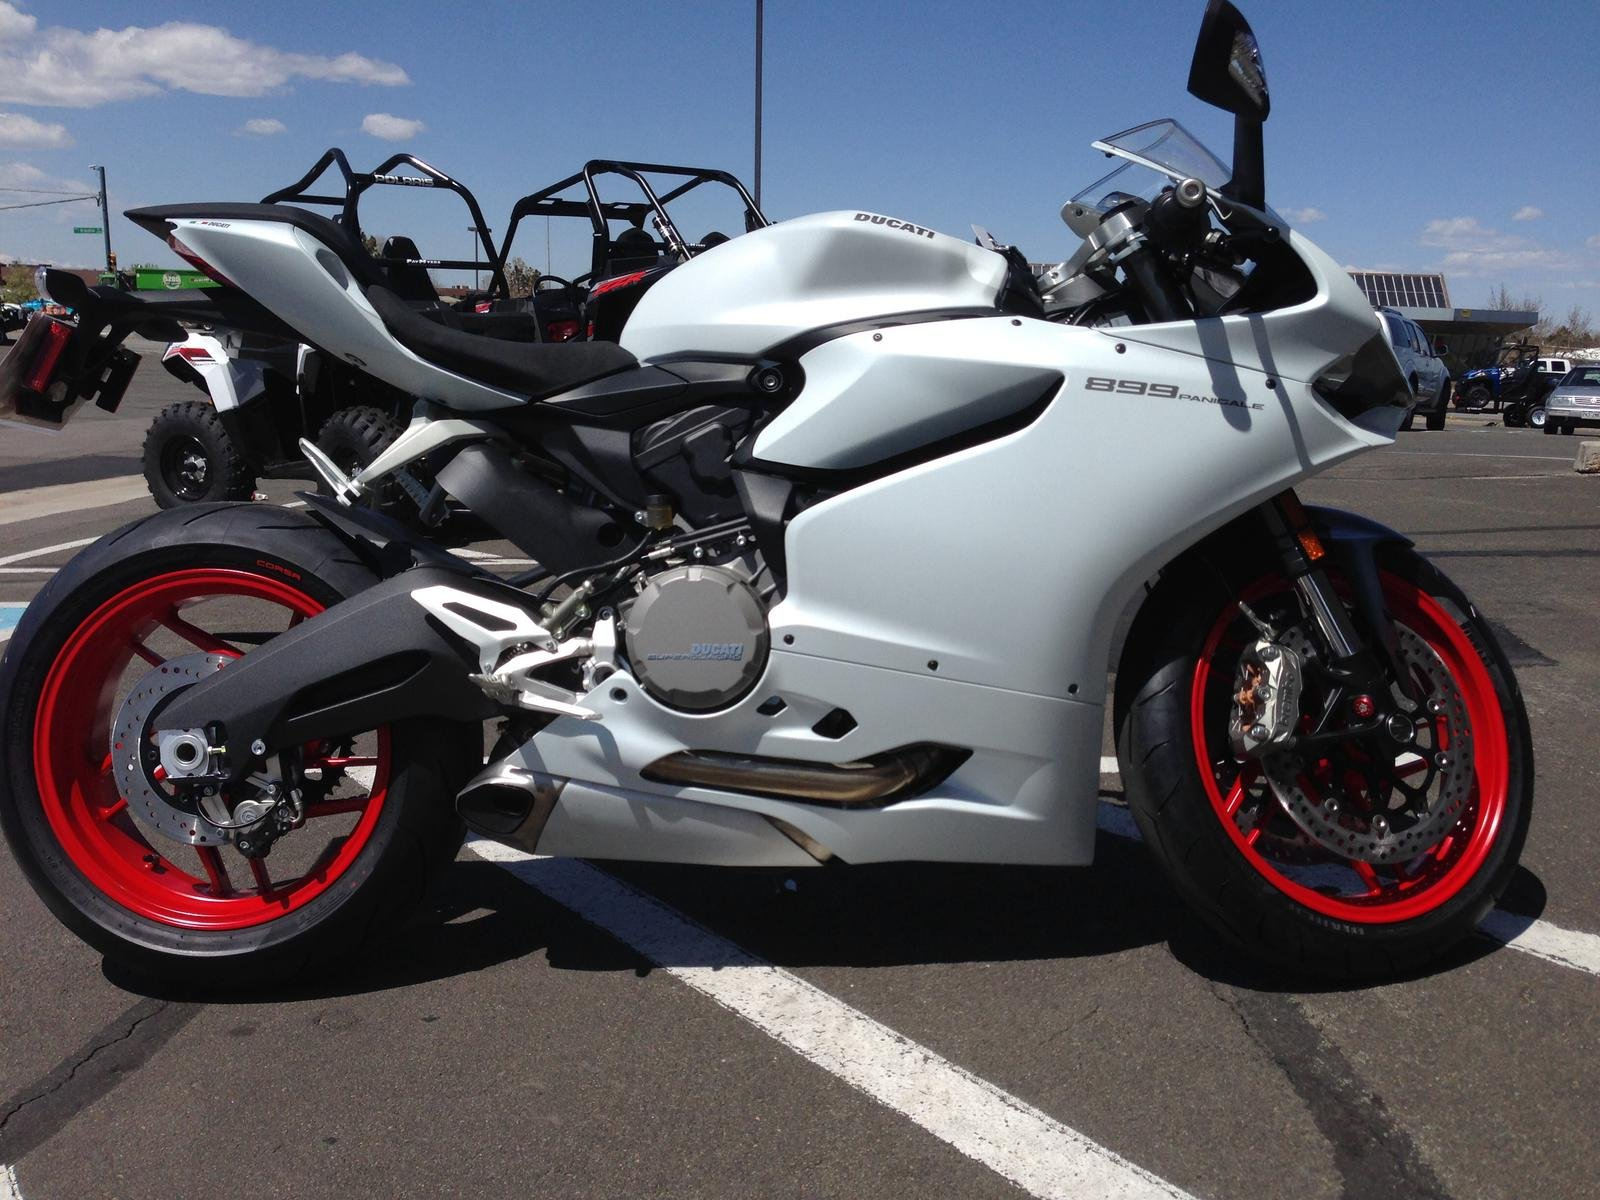 2014 899 panigale arctic white ducati 899 panigale forum. Black Bedroom Furniture Sets. Home Design Ideas